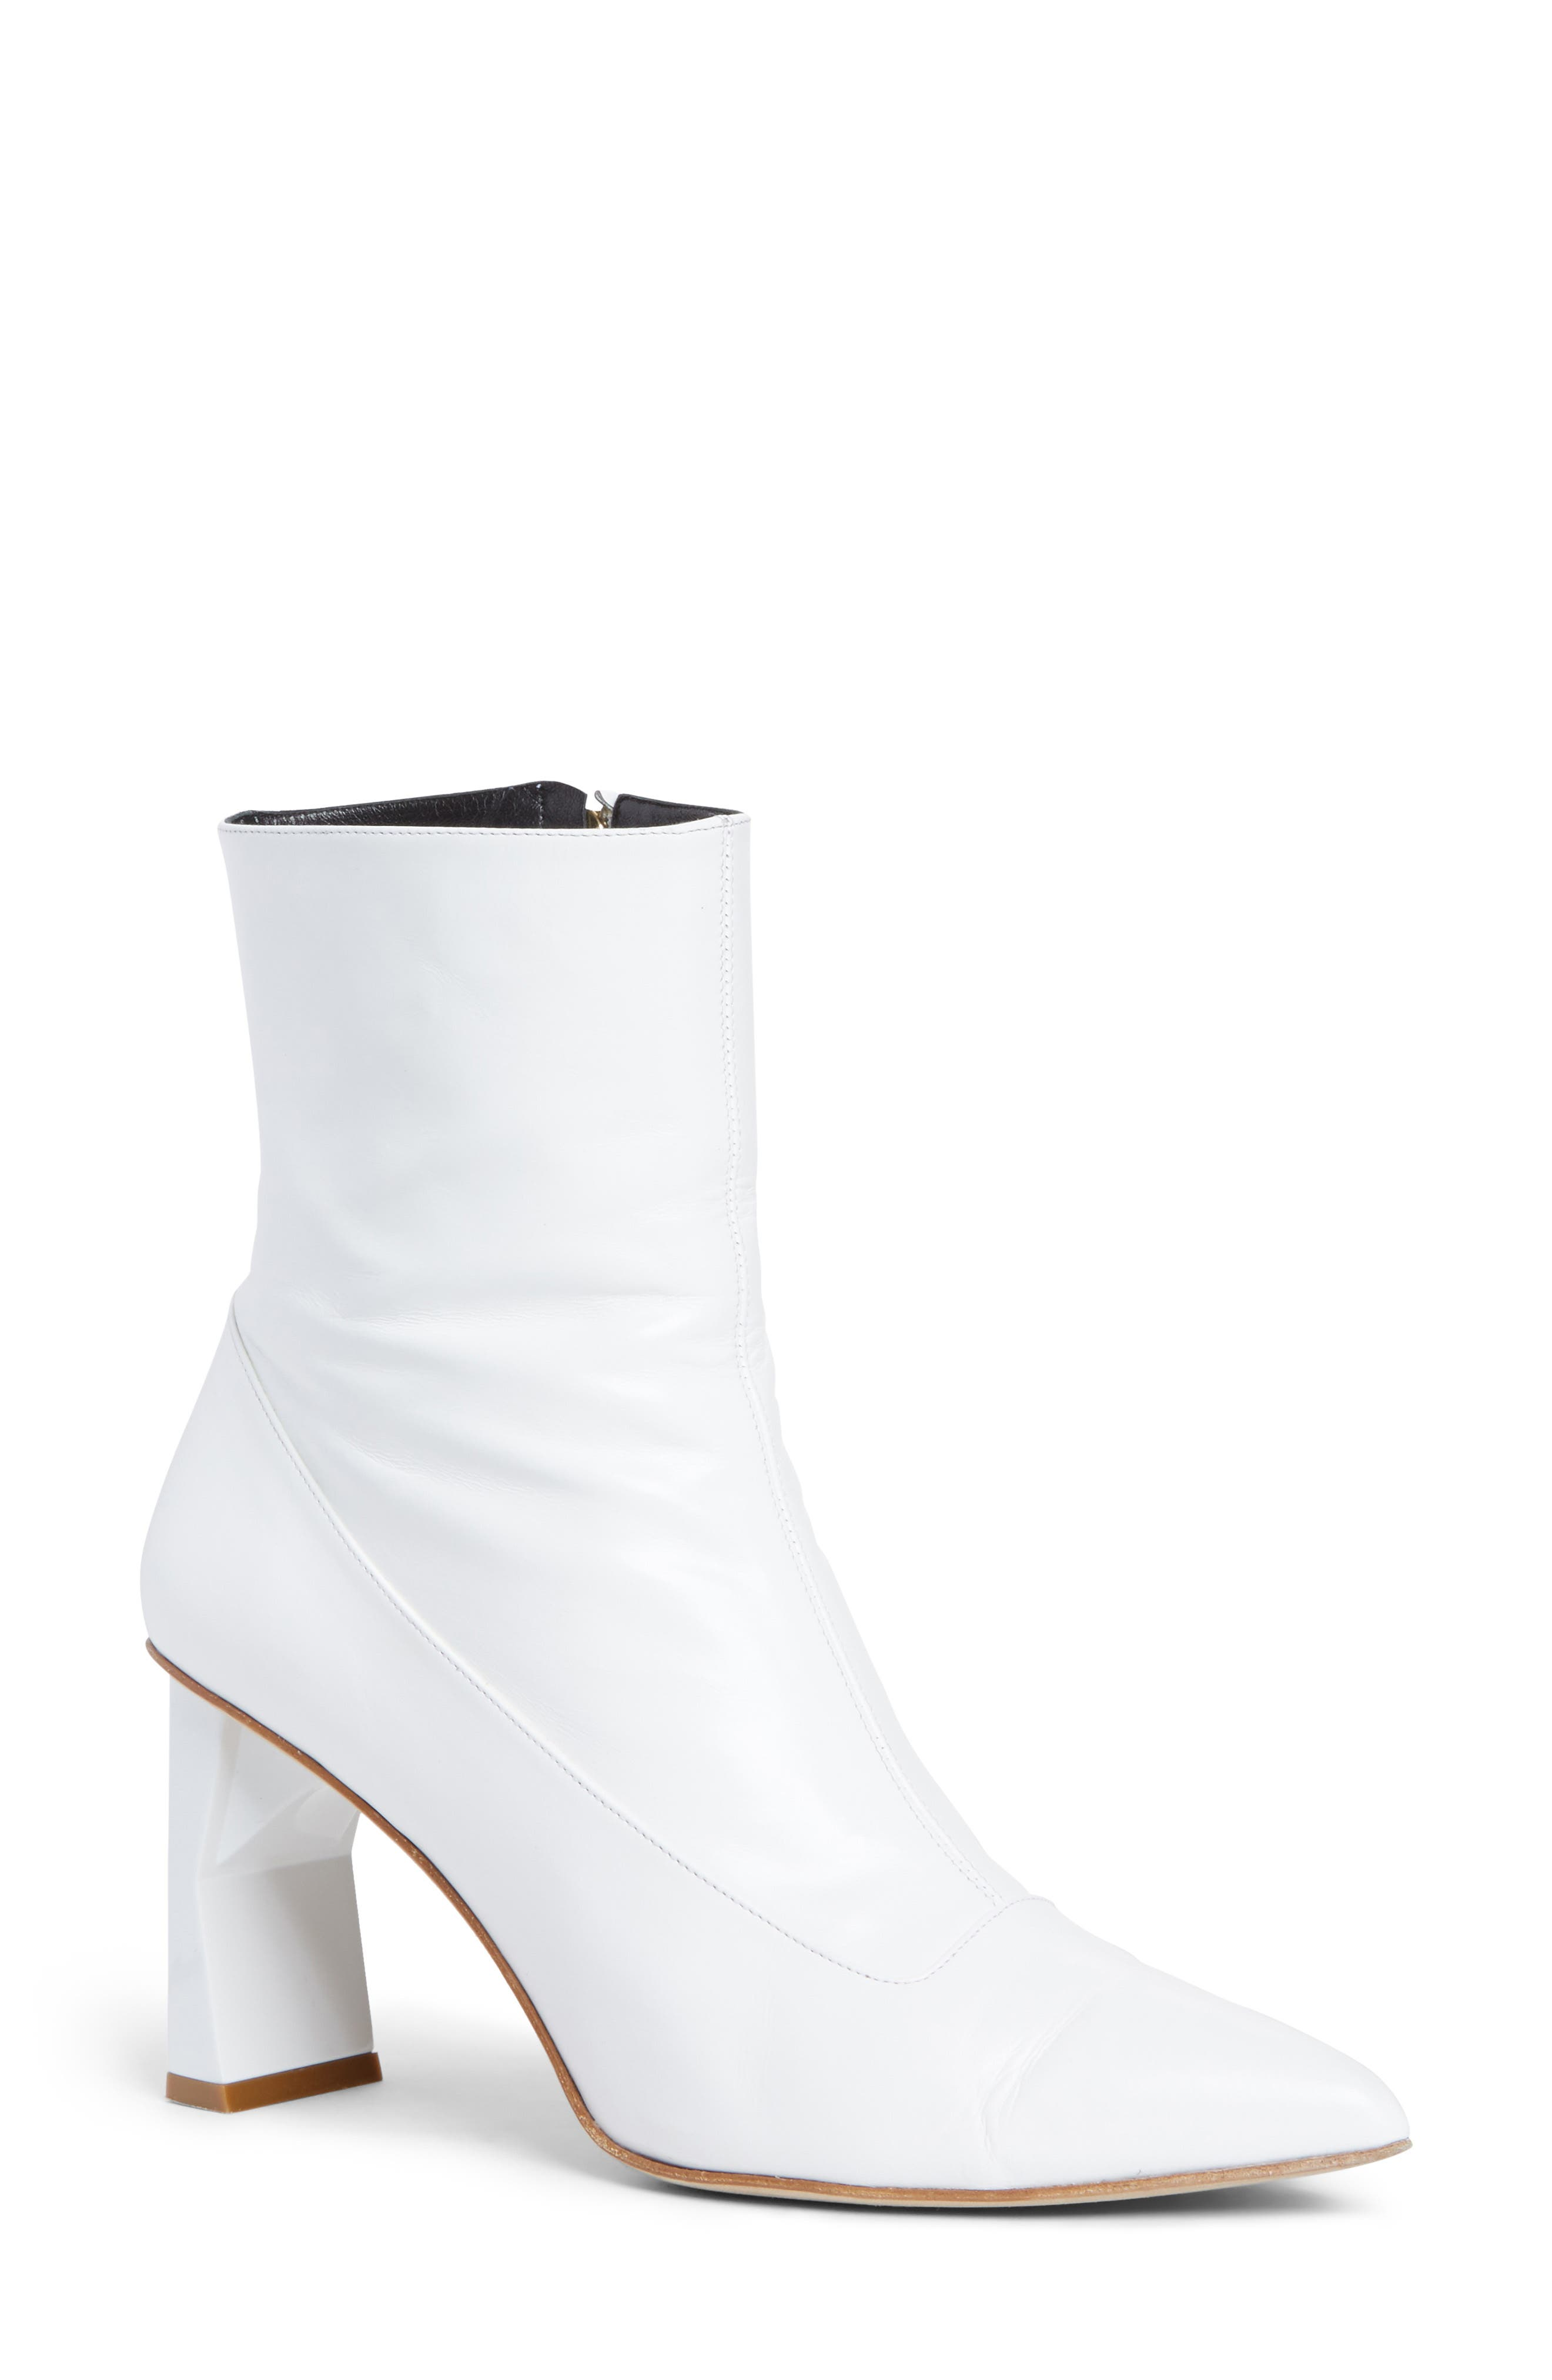 Alternate Image 1 Selected - Tibi Alexis Pointy Toe Bootie (Women)